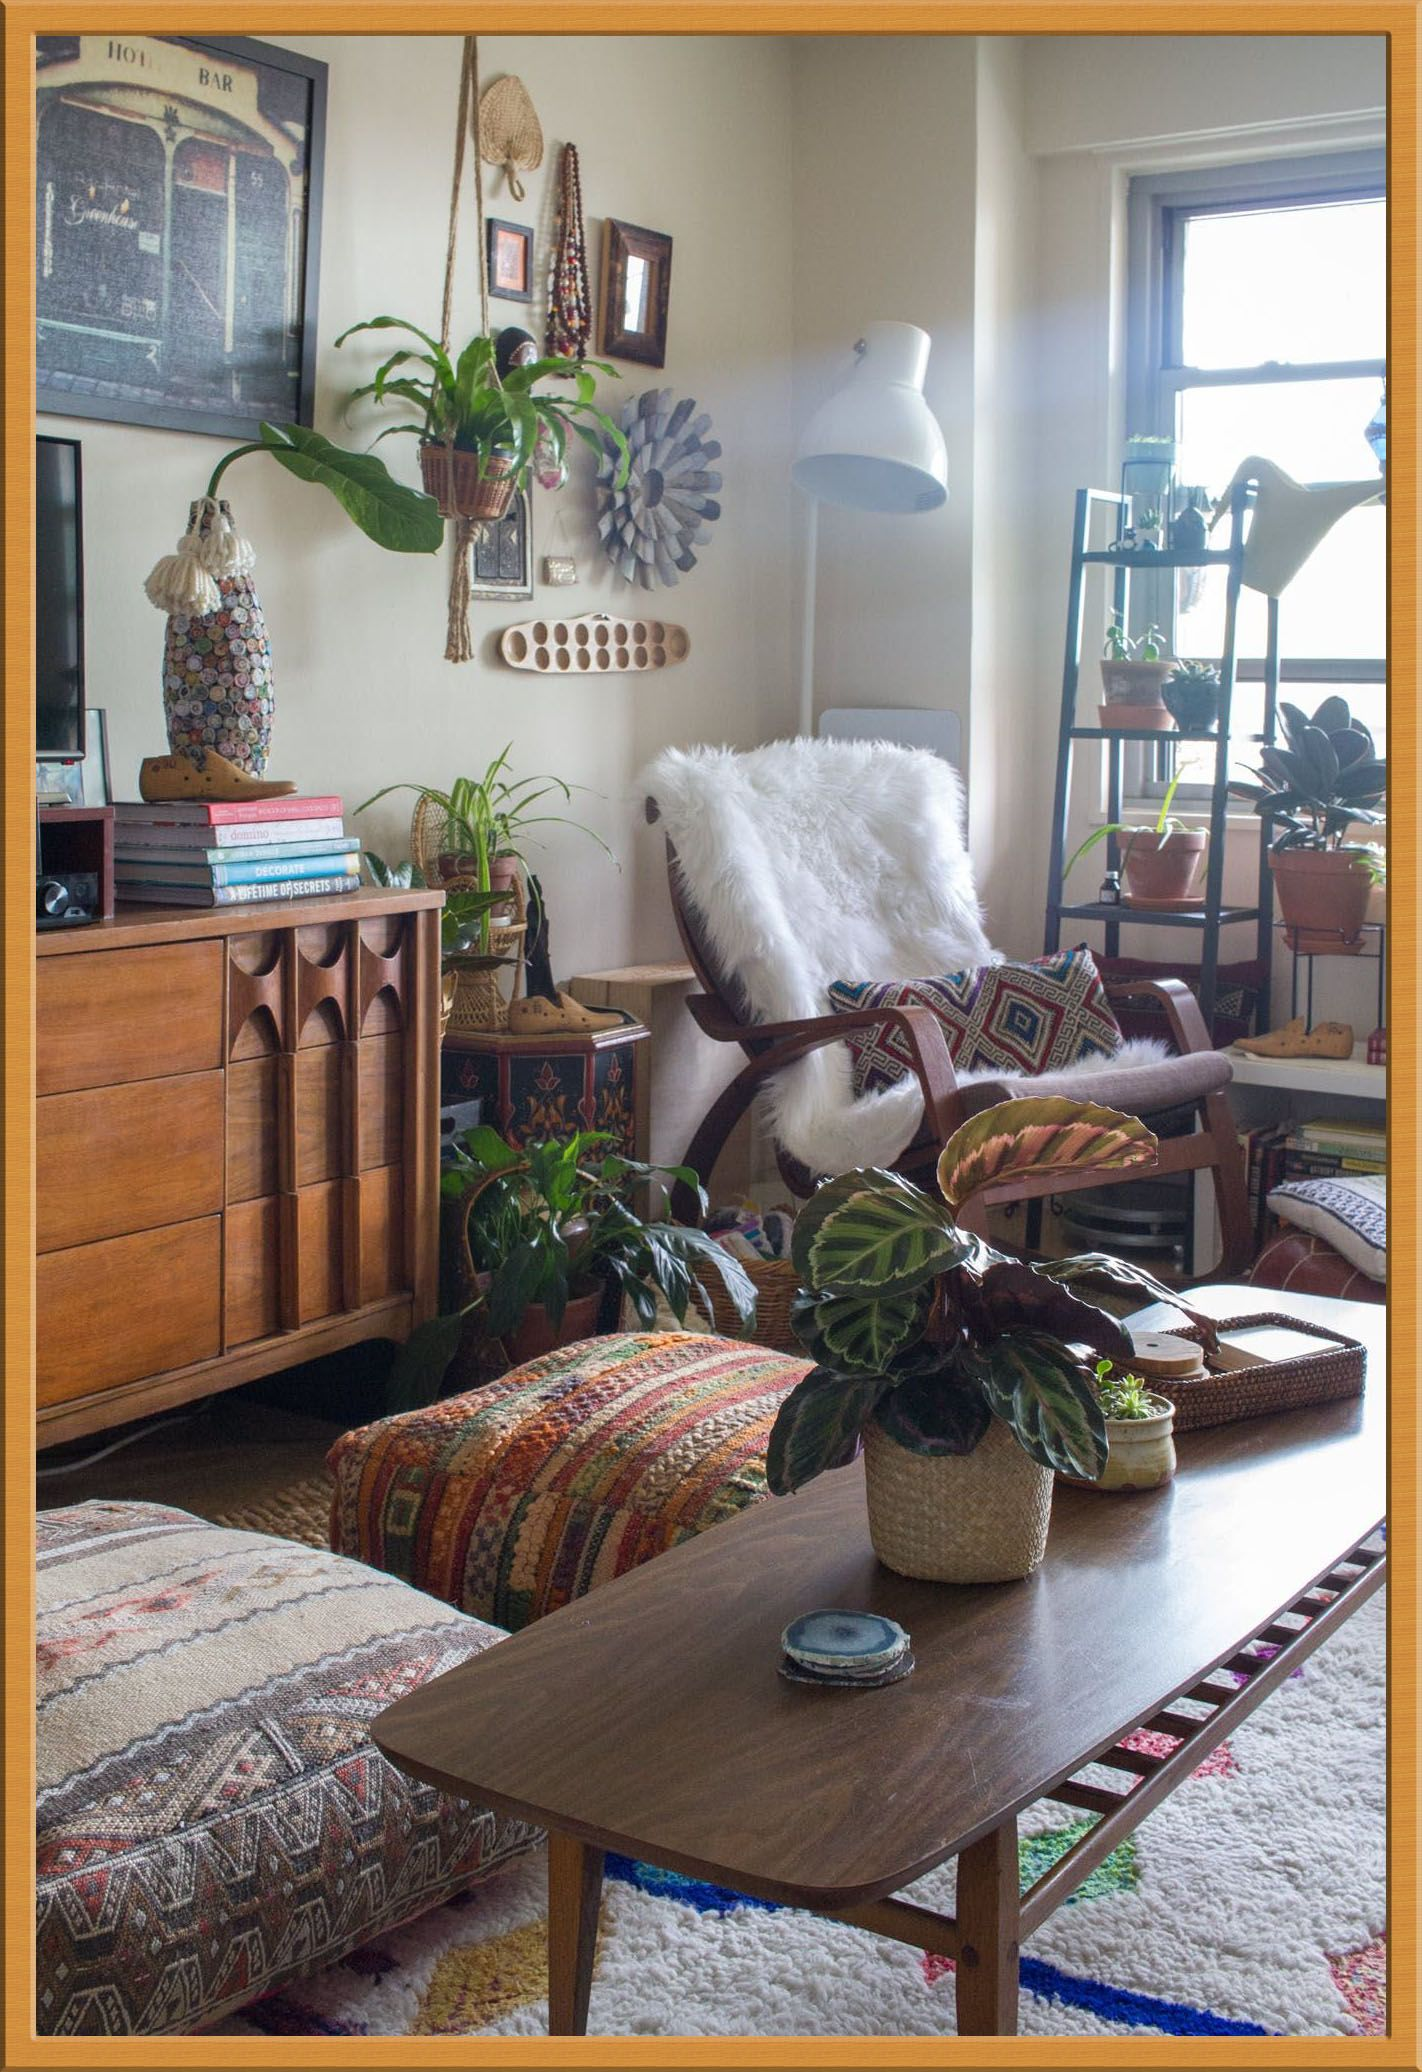 I Don't Want To Spend This Much Time On Bohemian Homedecor. How About You?